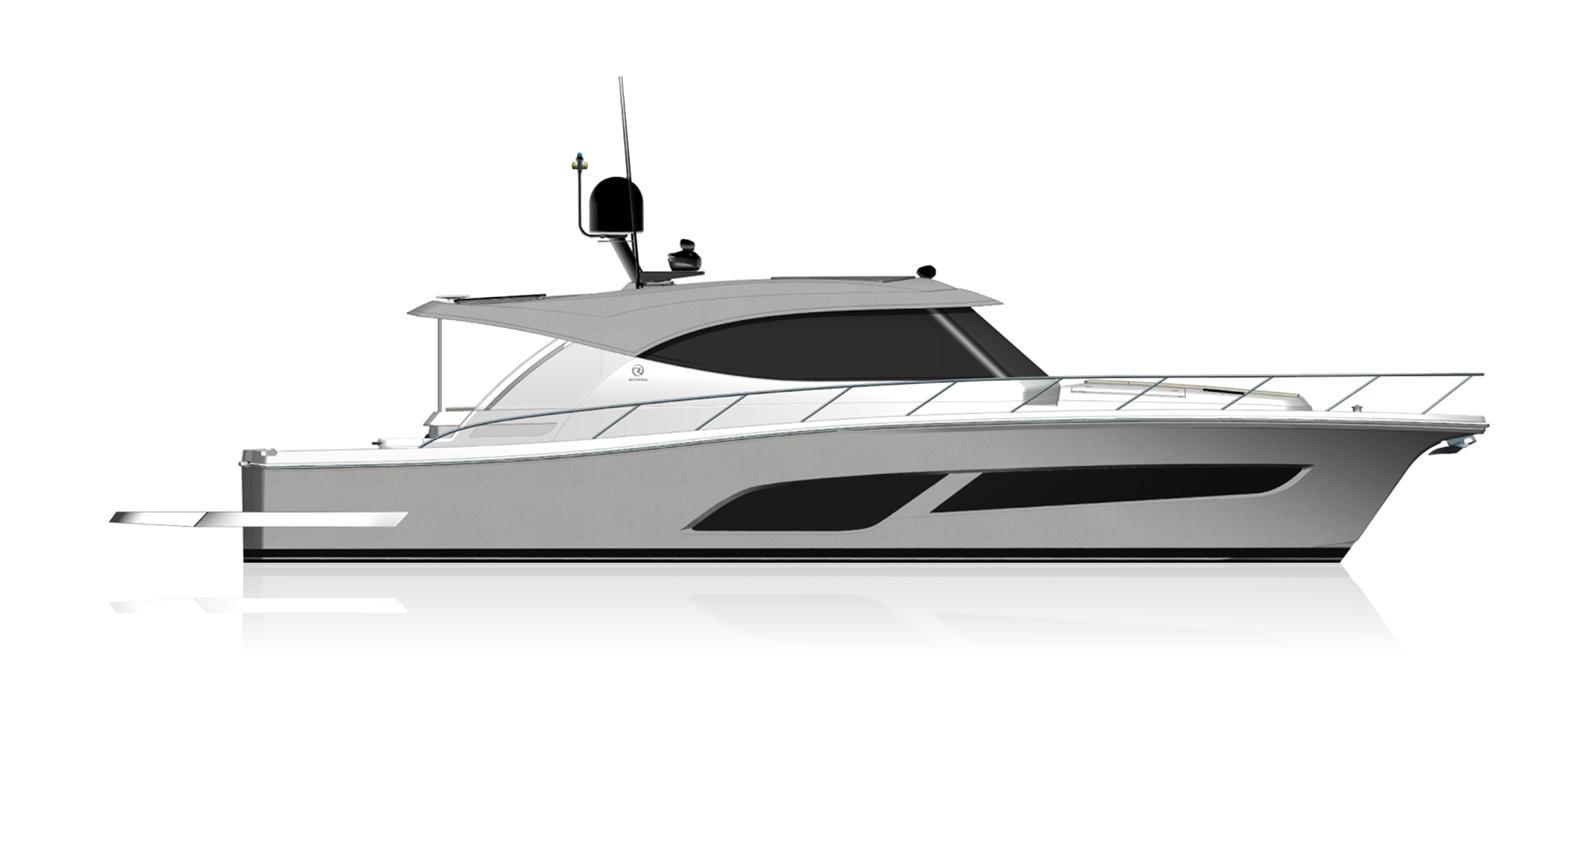 2021 Riviera 505 SUV #R021 inventory image at Sun Country Yachts in Newport Beach